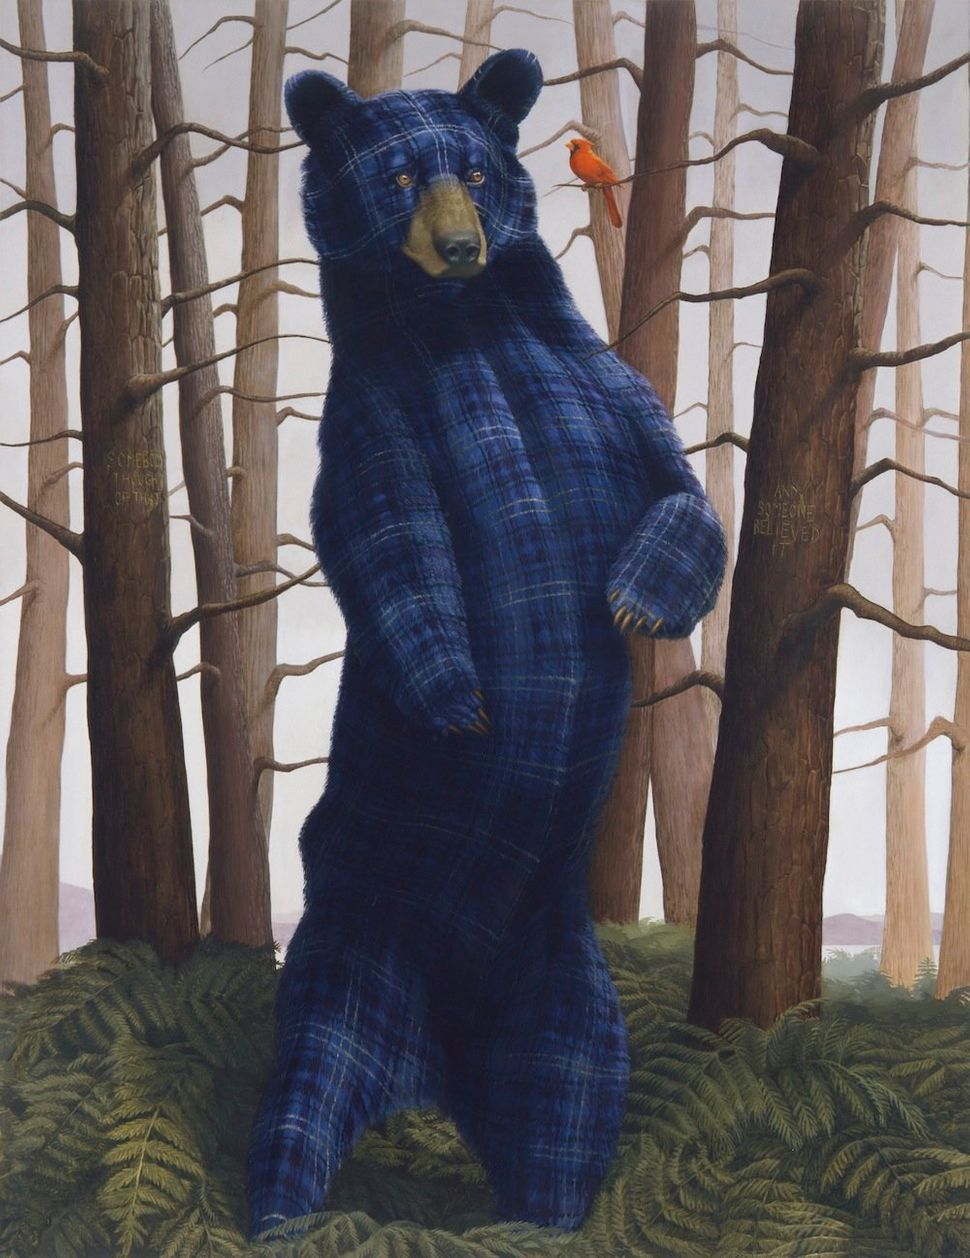 Sincerity and Empathy (Black Bear and Cardinal) 2014 Oil on linen 55 x 72 inches 139.7 x 182.9 cm LS 14/006